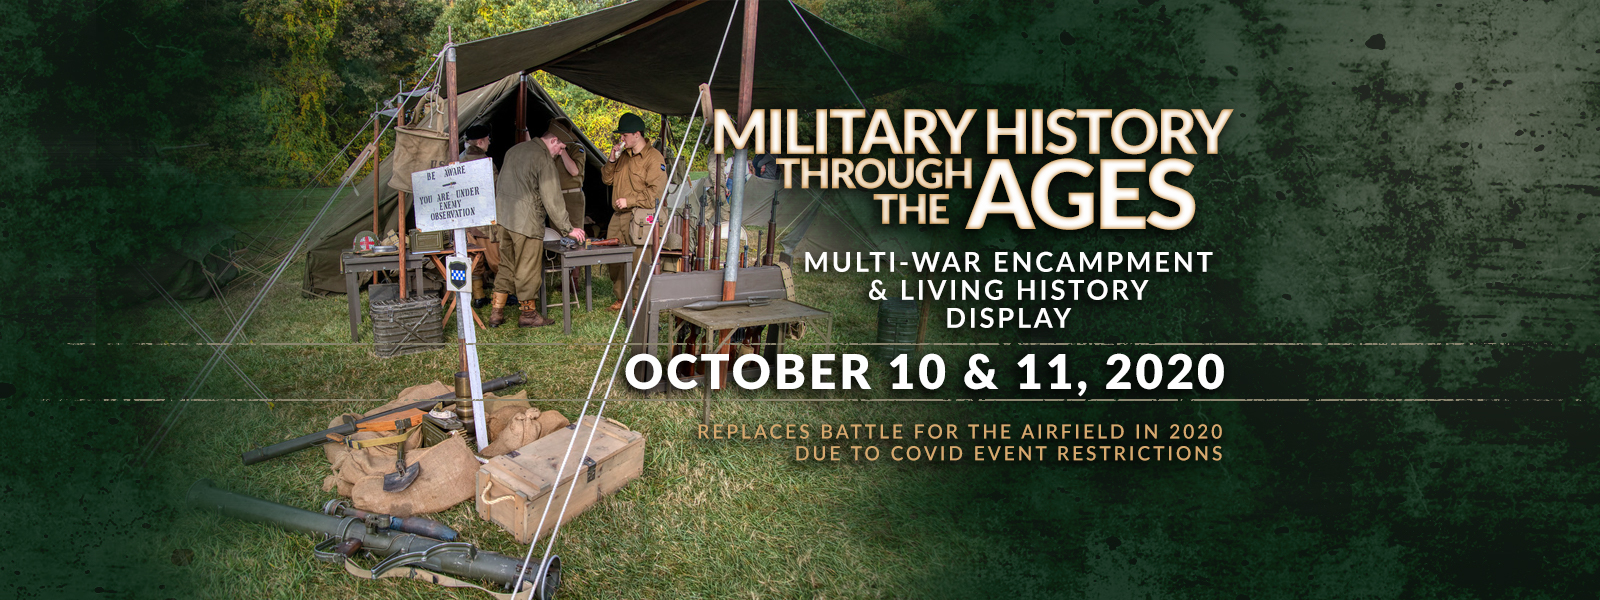 Military History Through the Ages - October 10-11, 2020